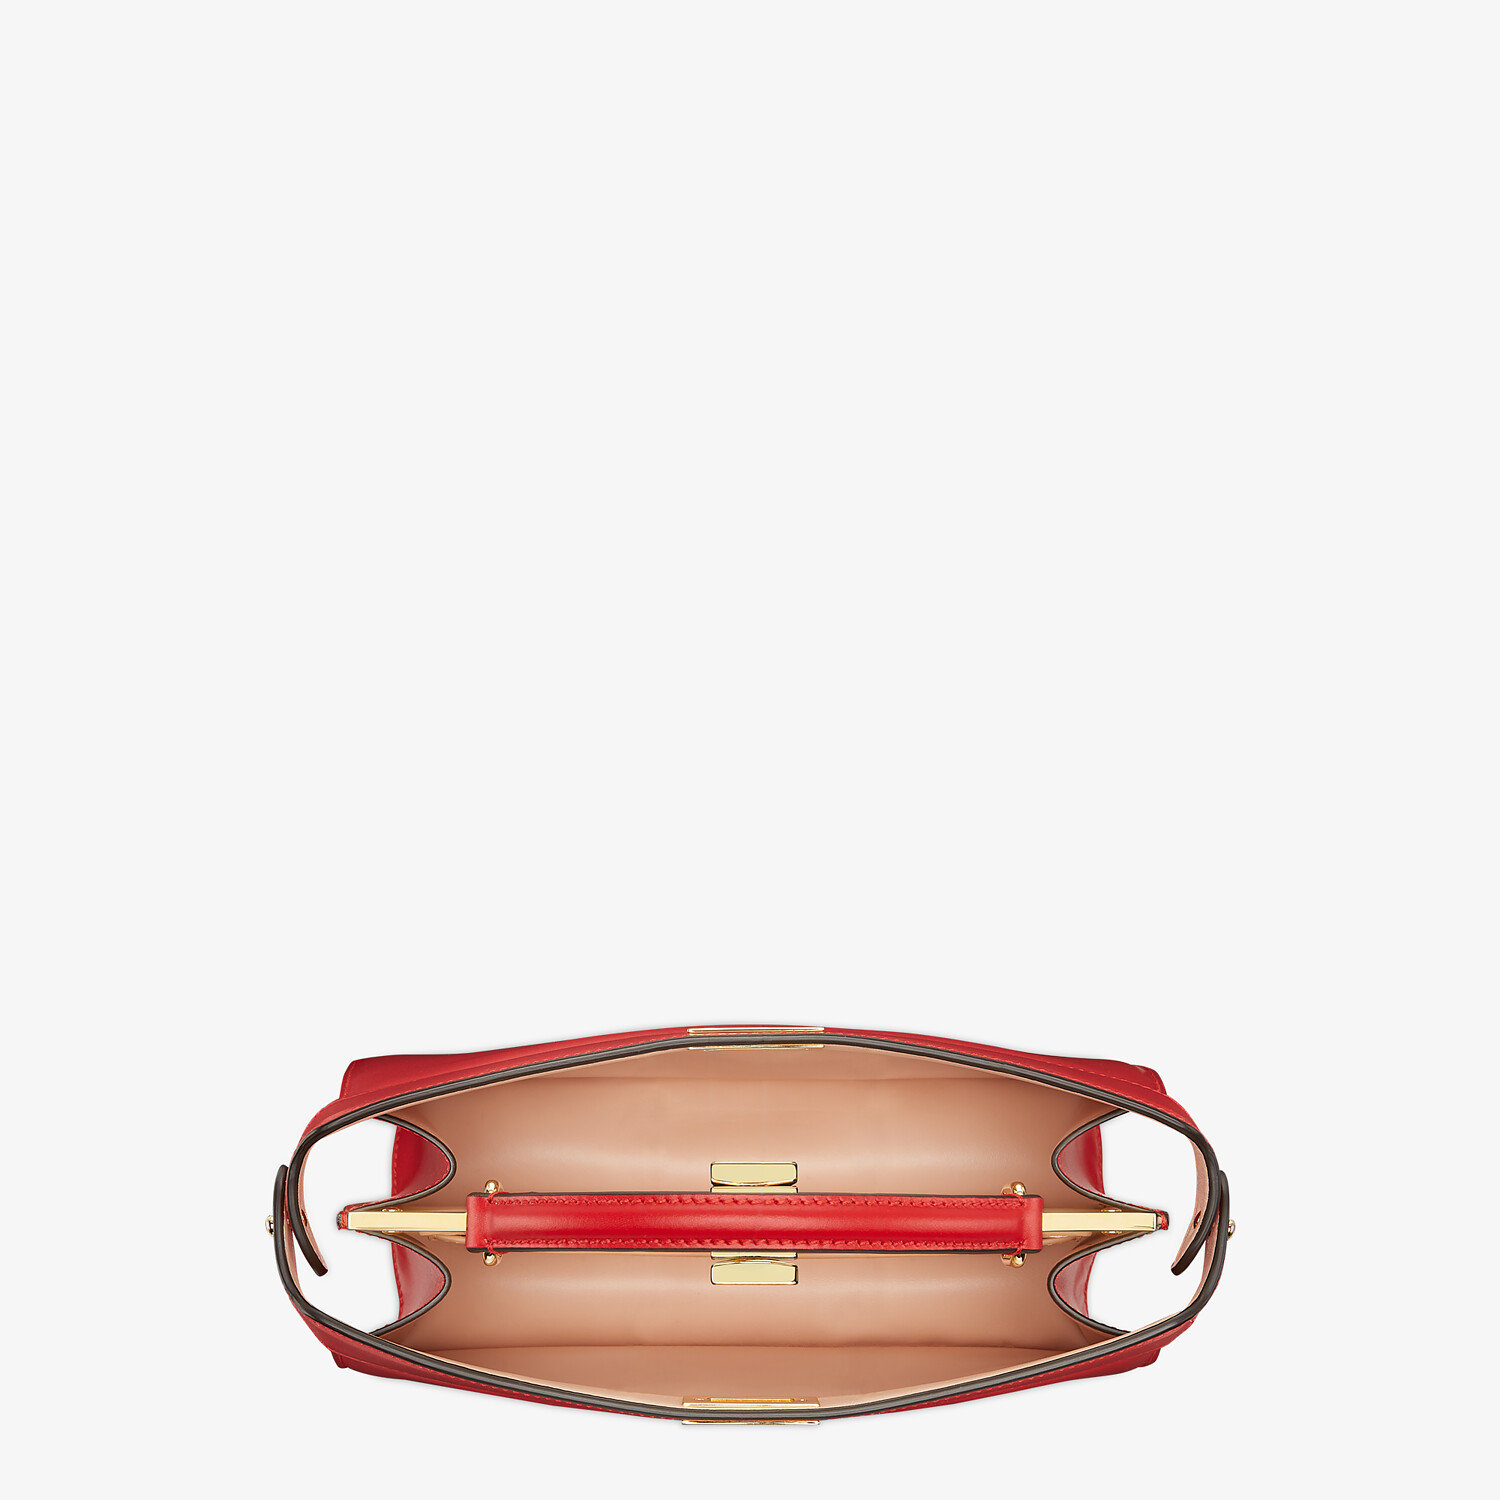 FENDI PEEKABOO ISEEU EAST-WEST - Red leather bag - view 5 detail